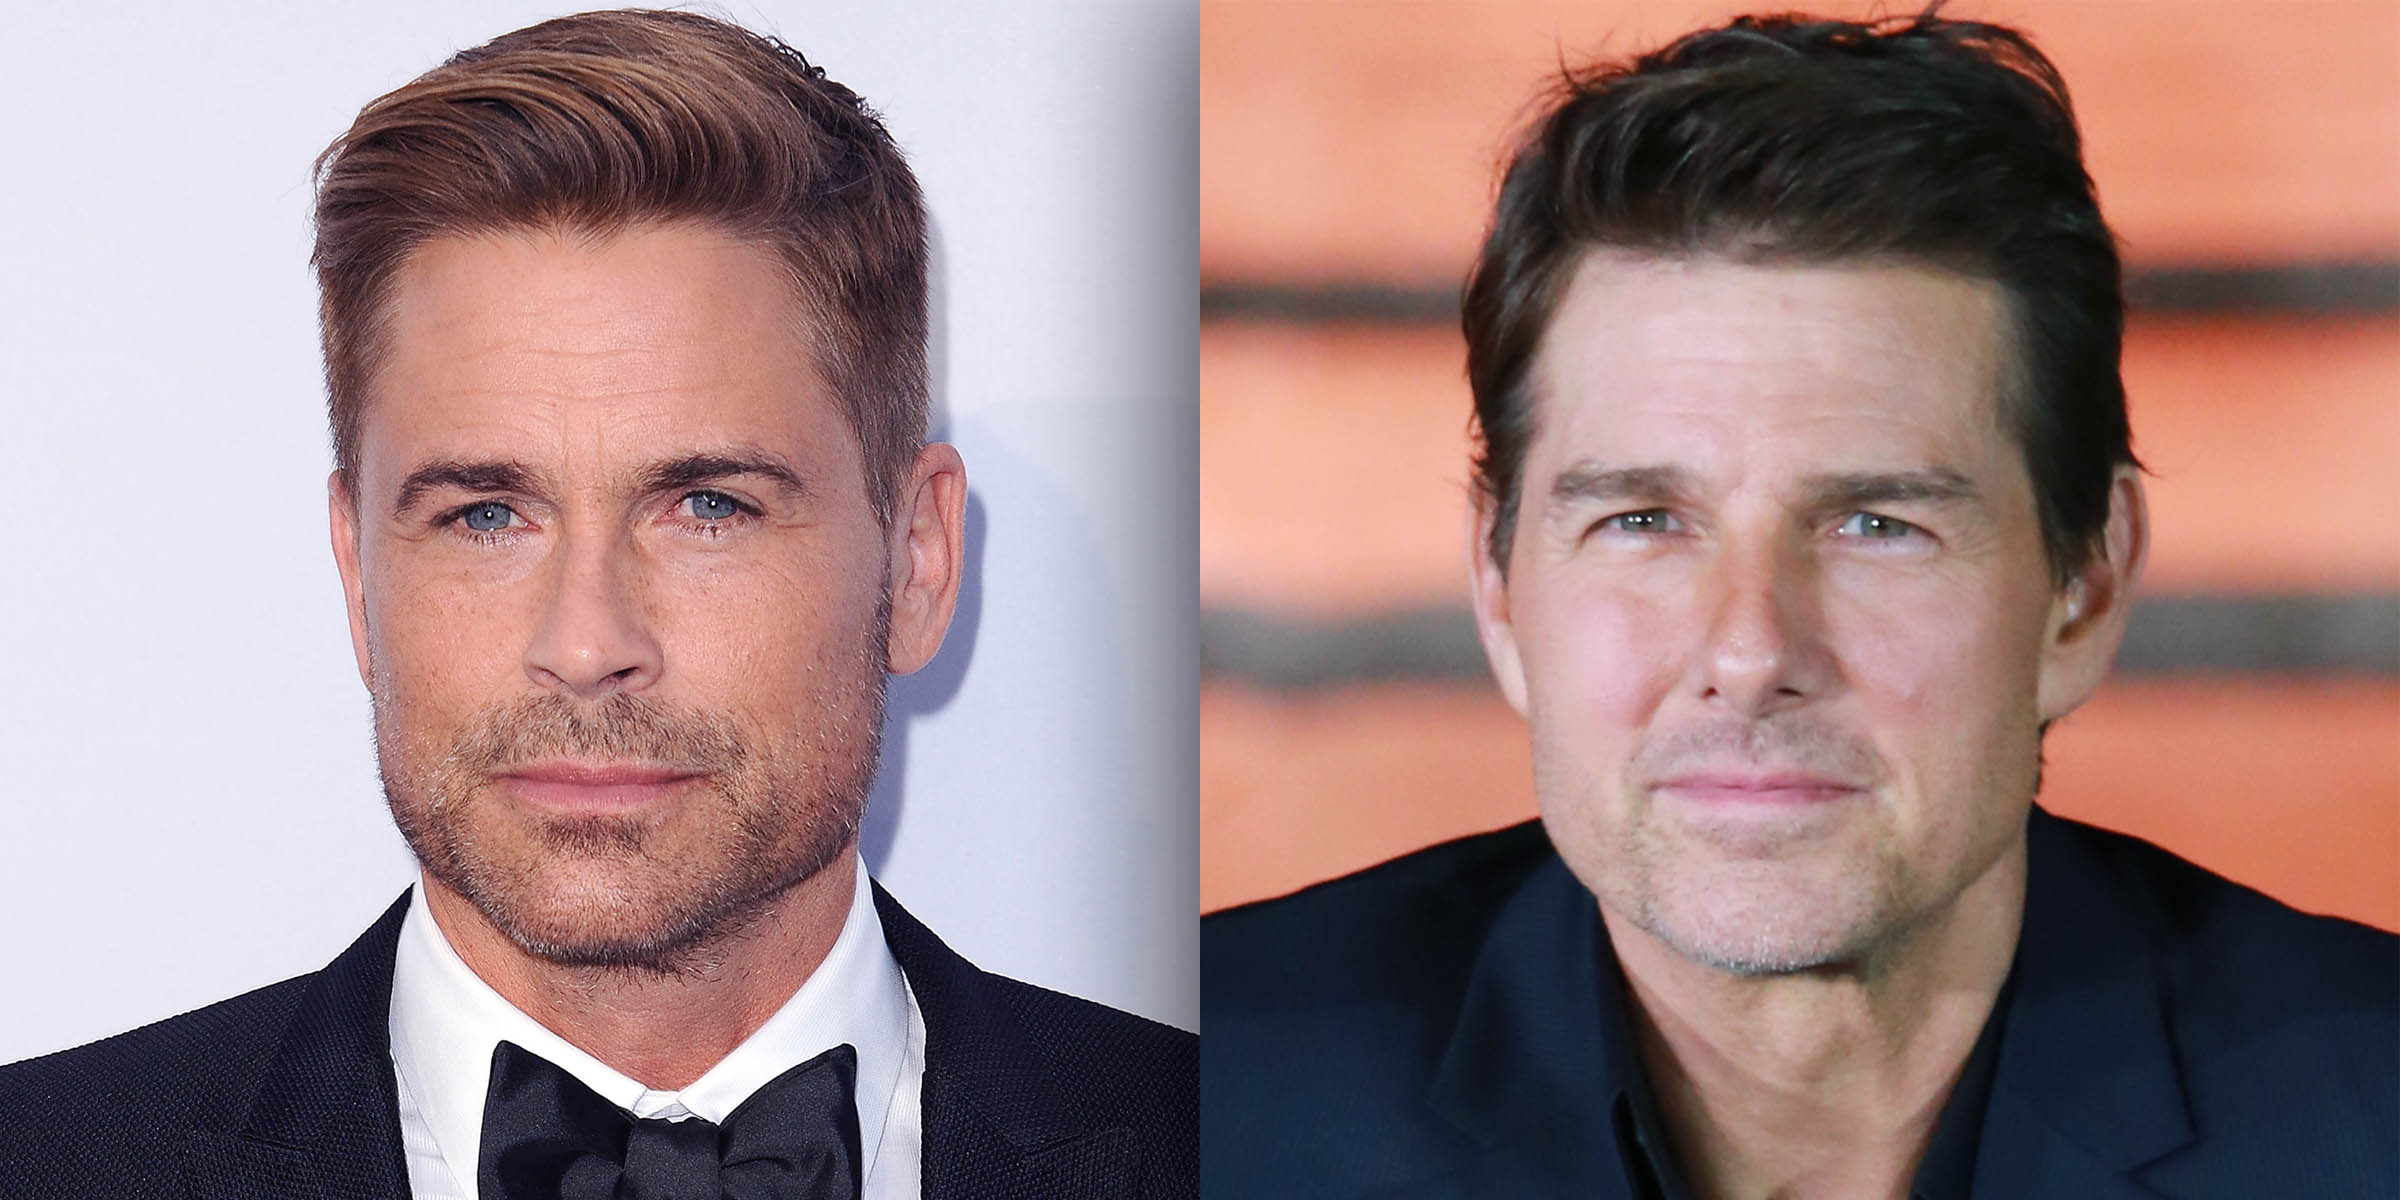 Rob Lowe Tom Cruise Went Ballistic Over Sharing A Room During Outsiders